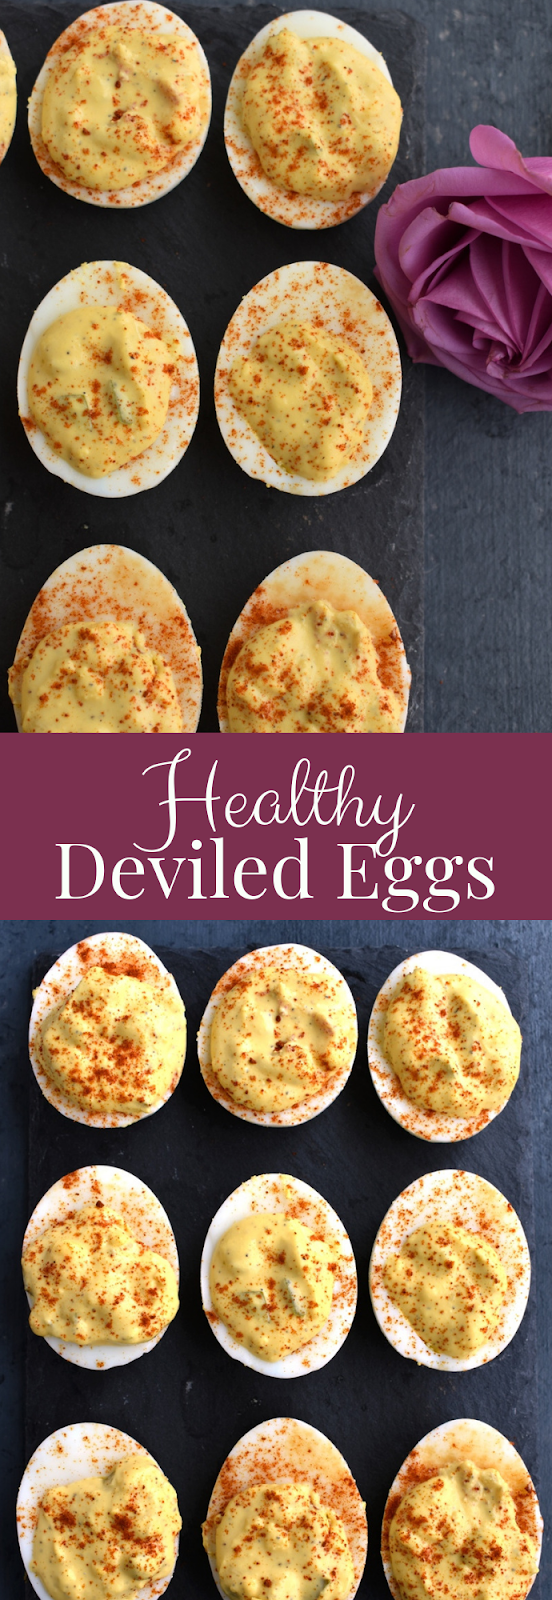 Healthy Deviled Eggs